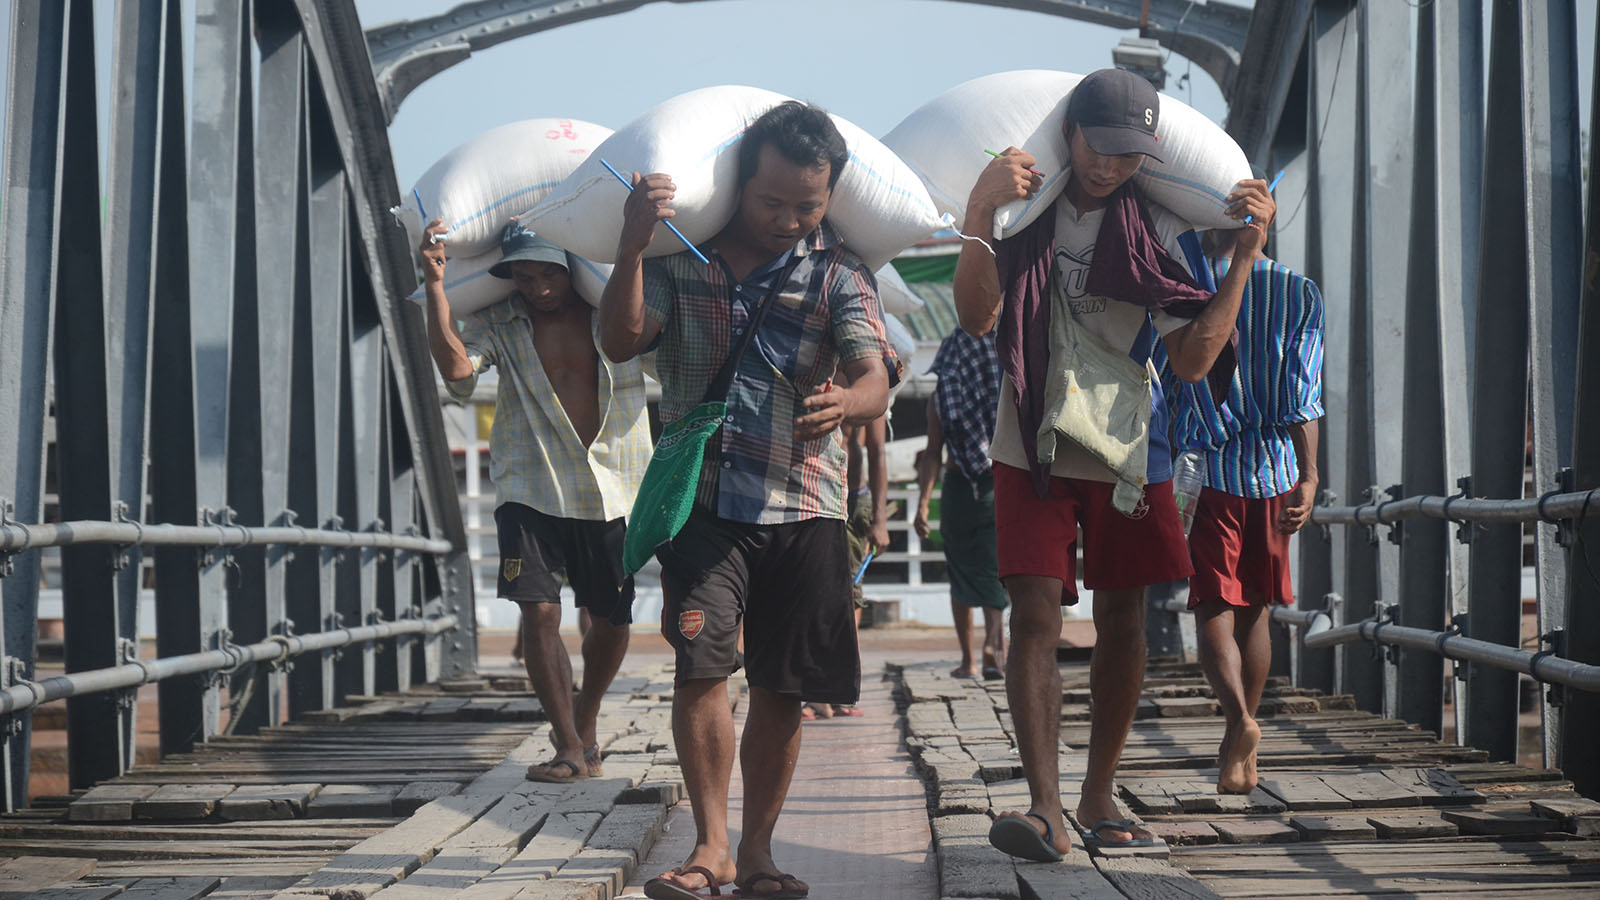 Workers carry bags of rice at the Botahtaung Jetty in Yangon. Photo: Phoe Khwar